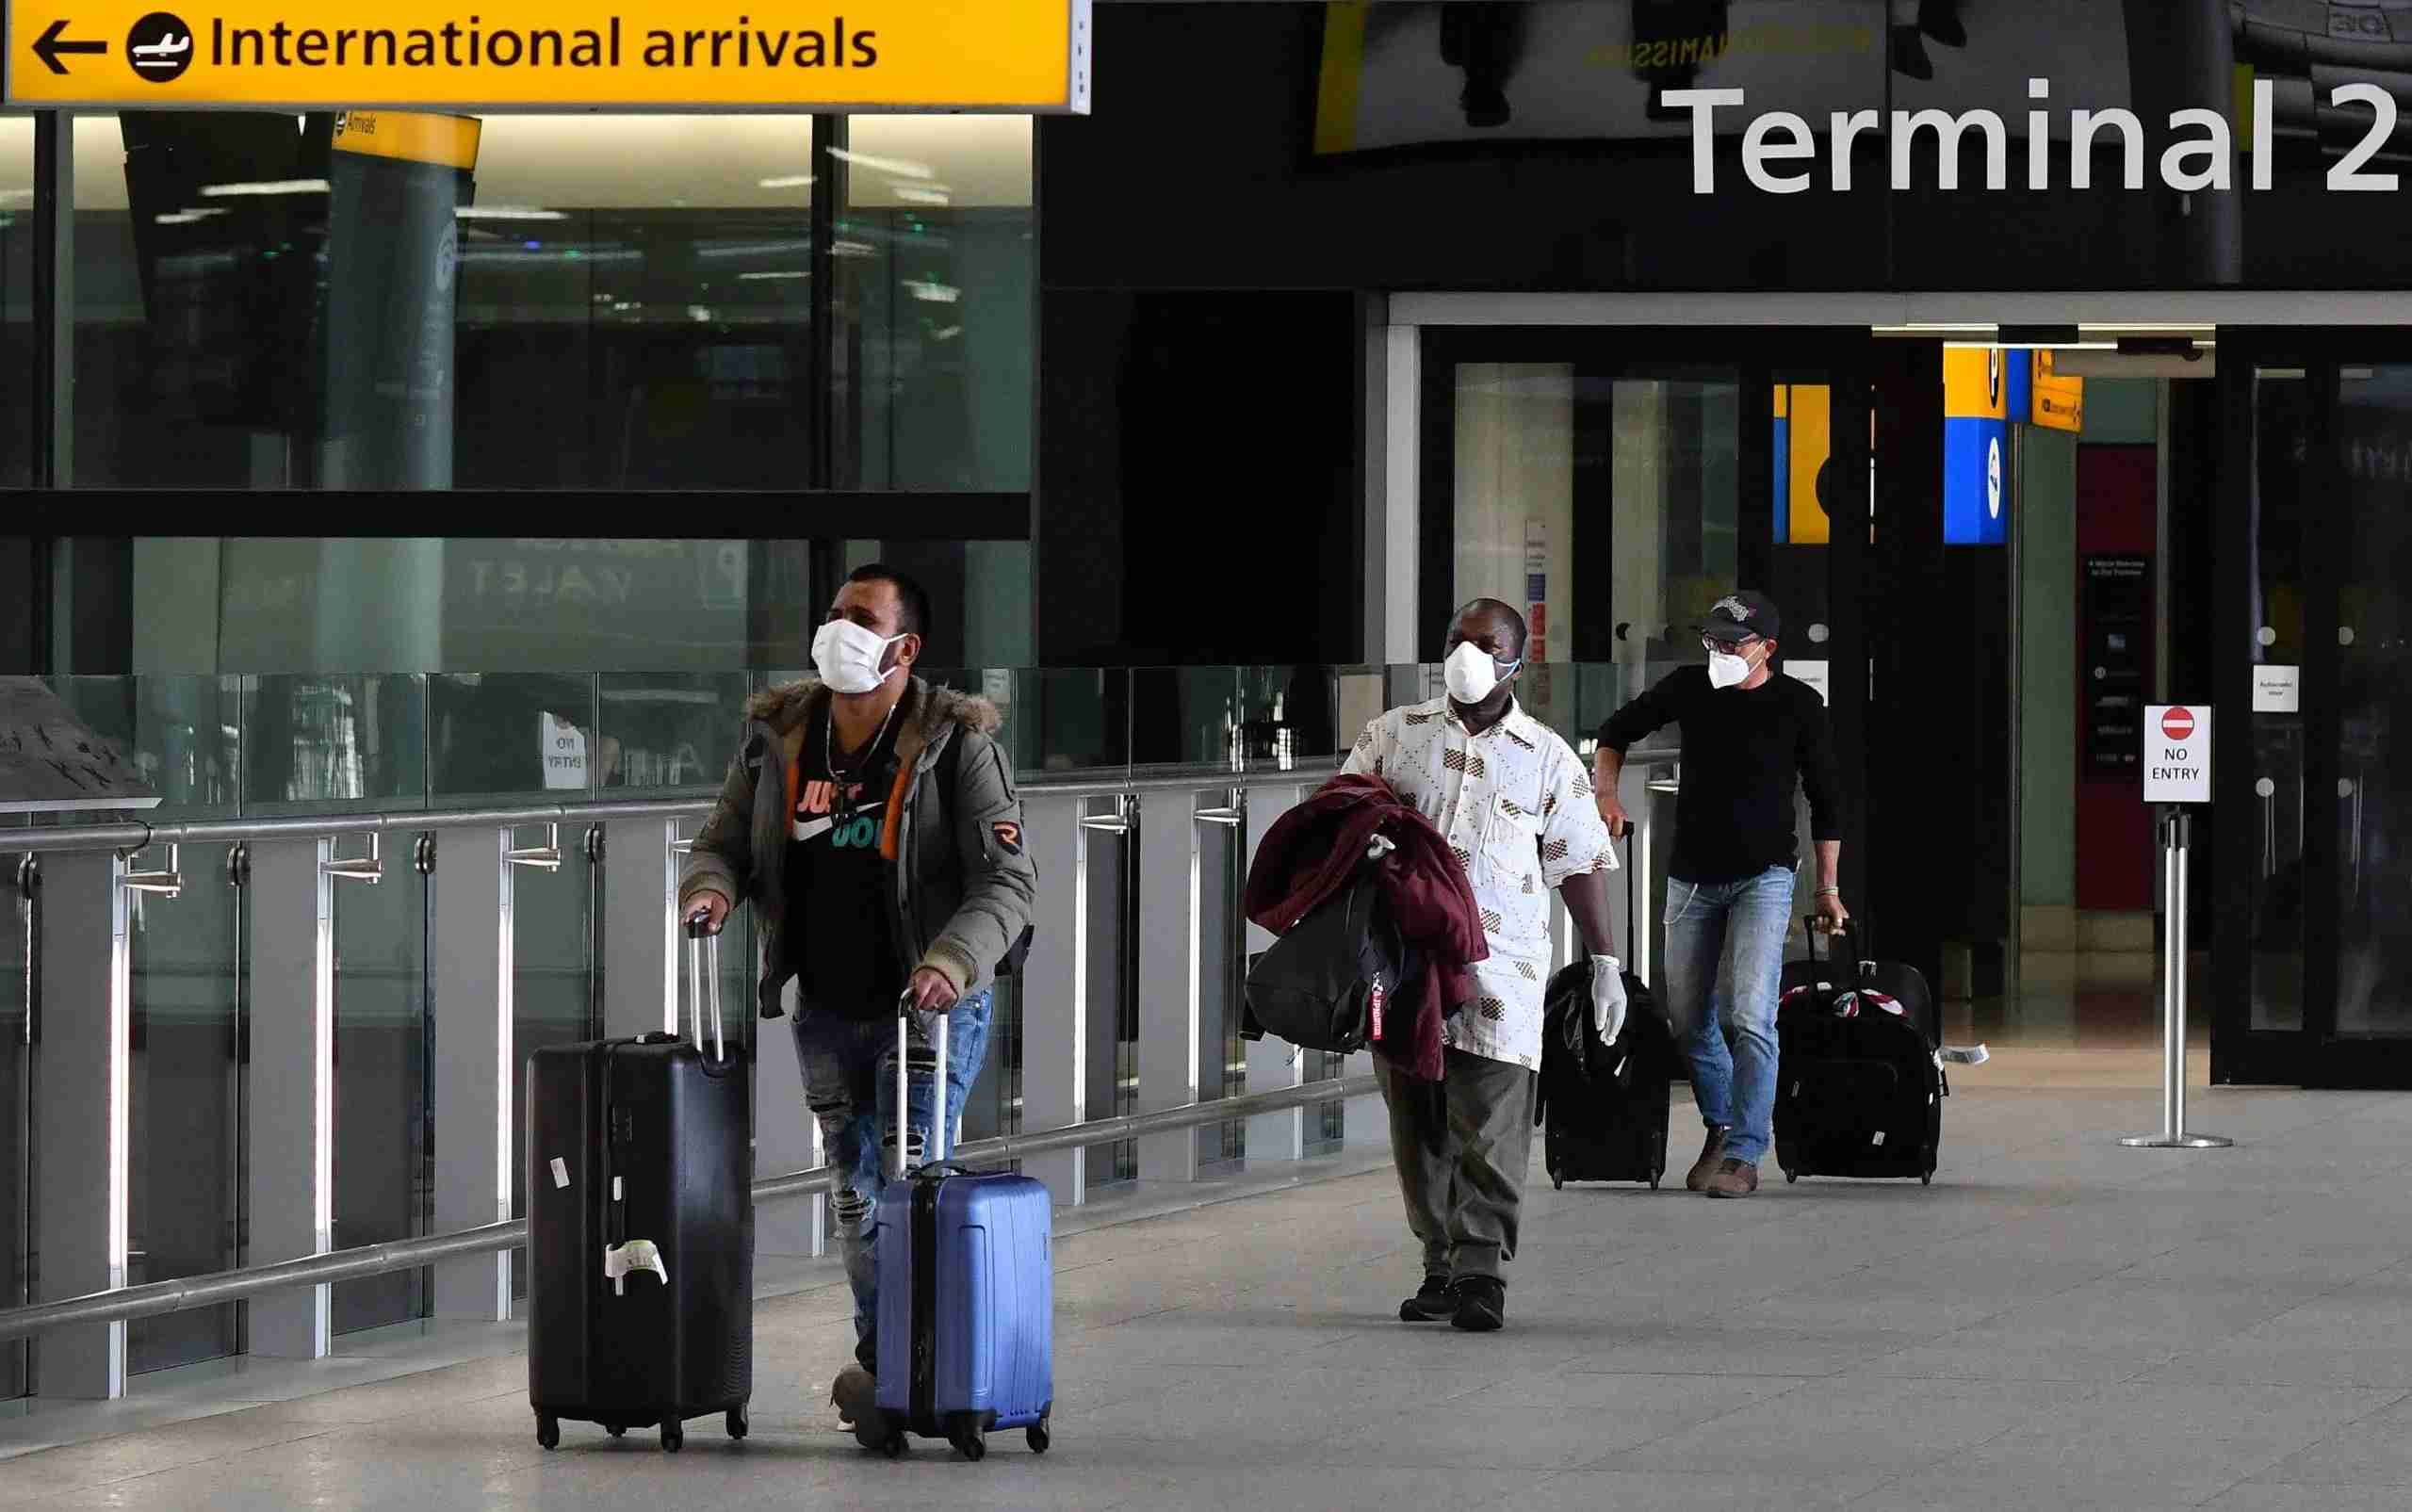 Passengers wearing PPE (personal protective equipment), including a face mask as a precautionary measure against COVID-19, walk through the arrivals hall after landing at at Terminal Two of London Heathrow Airport in west London, on May 9, 2020. - Britain could introduce a 14-day mandatory quarantine for international arrivals to stem the spread of coronavirus as part of its plan to ease the lockdown, an airline association said Saturday, sparking alarm in an industry already badly hit by the global pandemic. (Photo by JUSTIN TALLIS / AFP) (Photo by JUSTIN TALLIS/AFP via Getty Images)